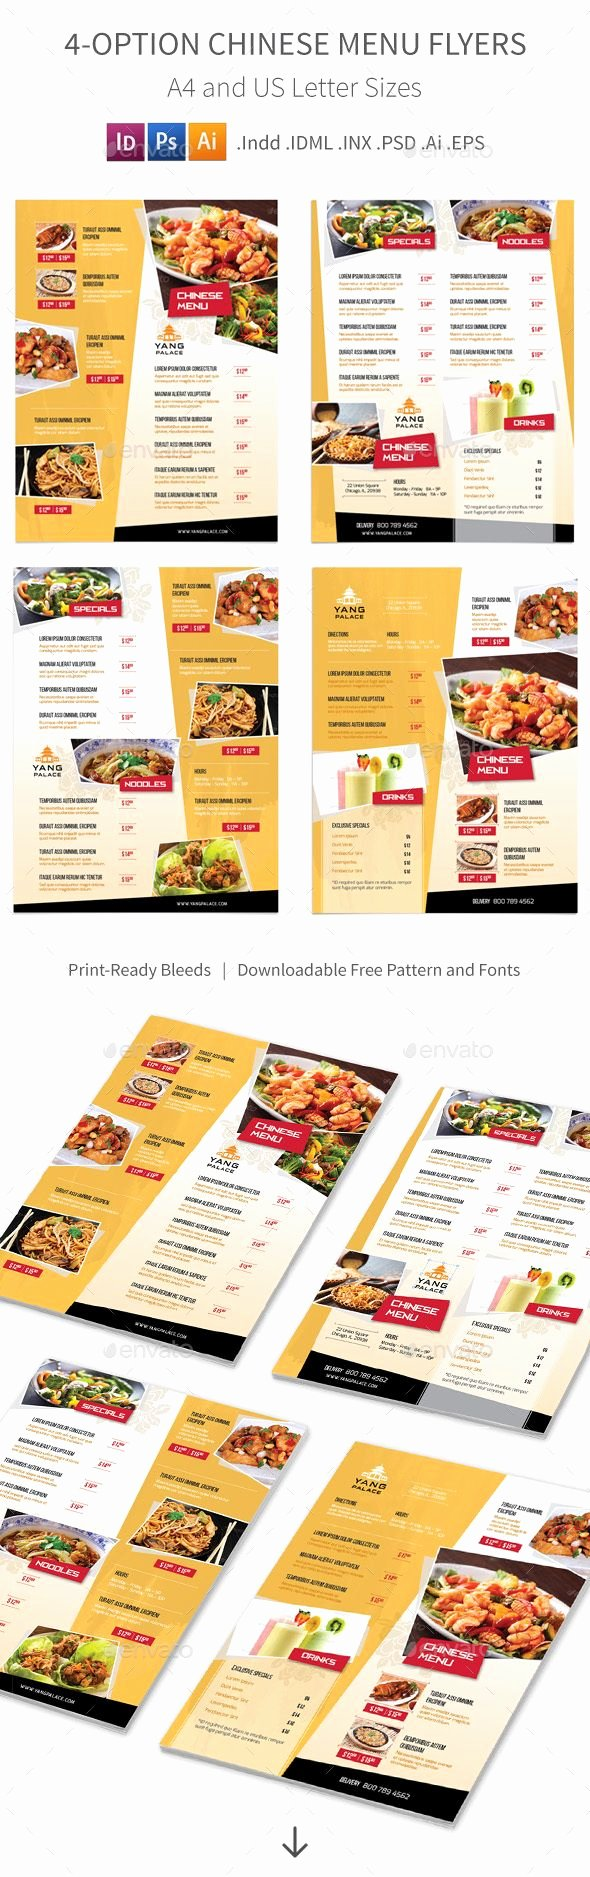 Indesign Menu Template Free Best Of 4 Options Chinese Restaurant Menu Flyers Template Psd